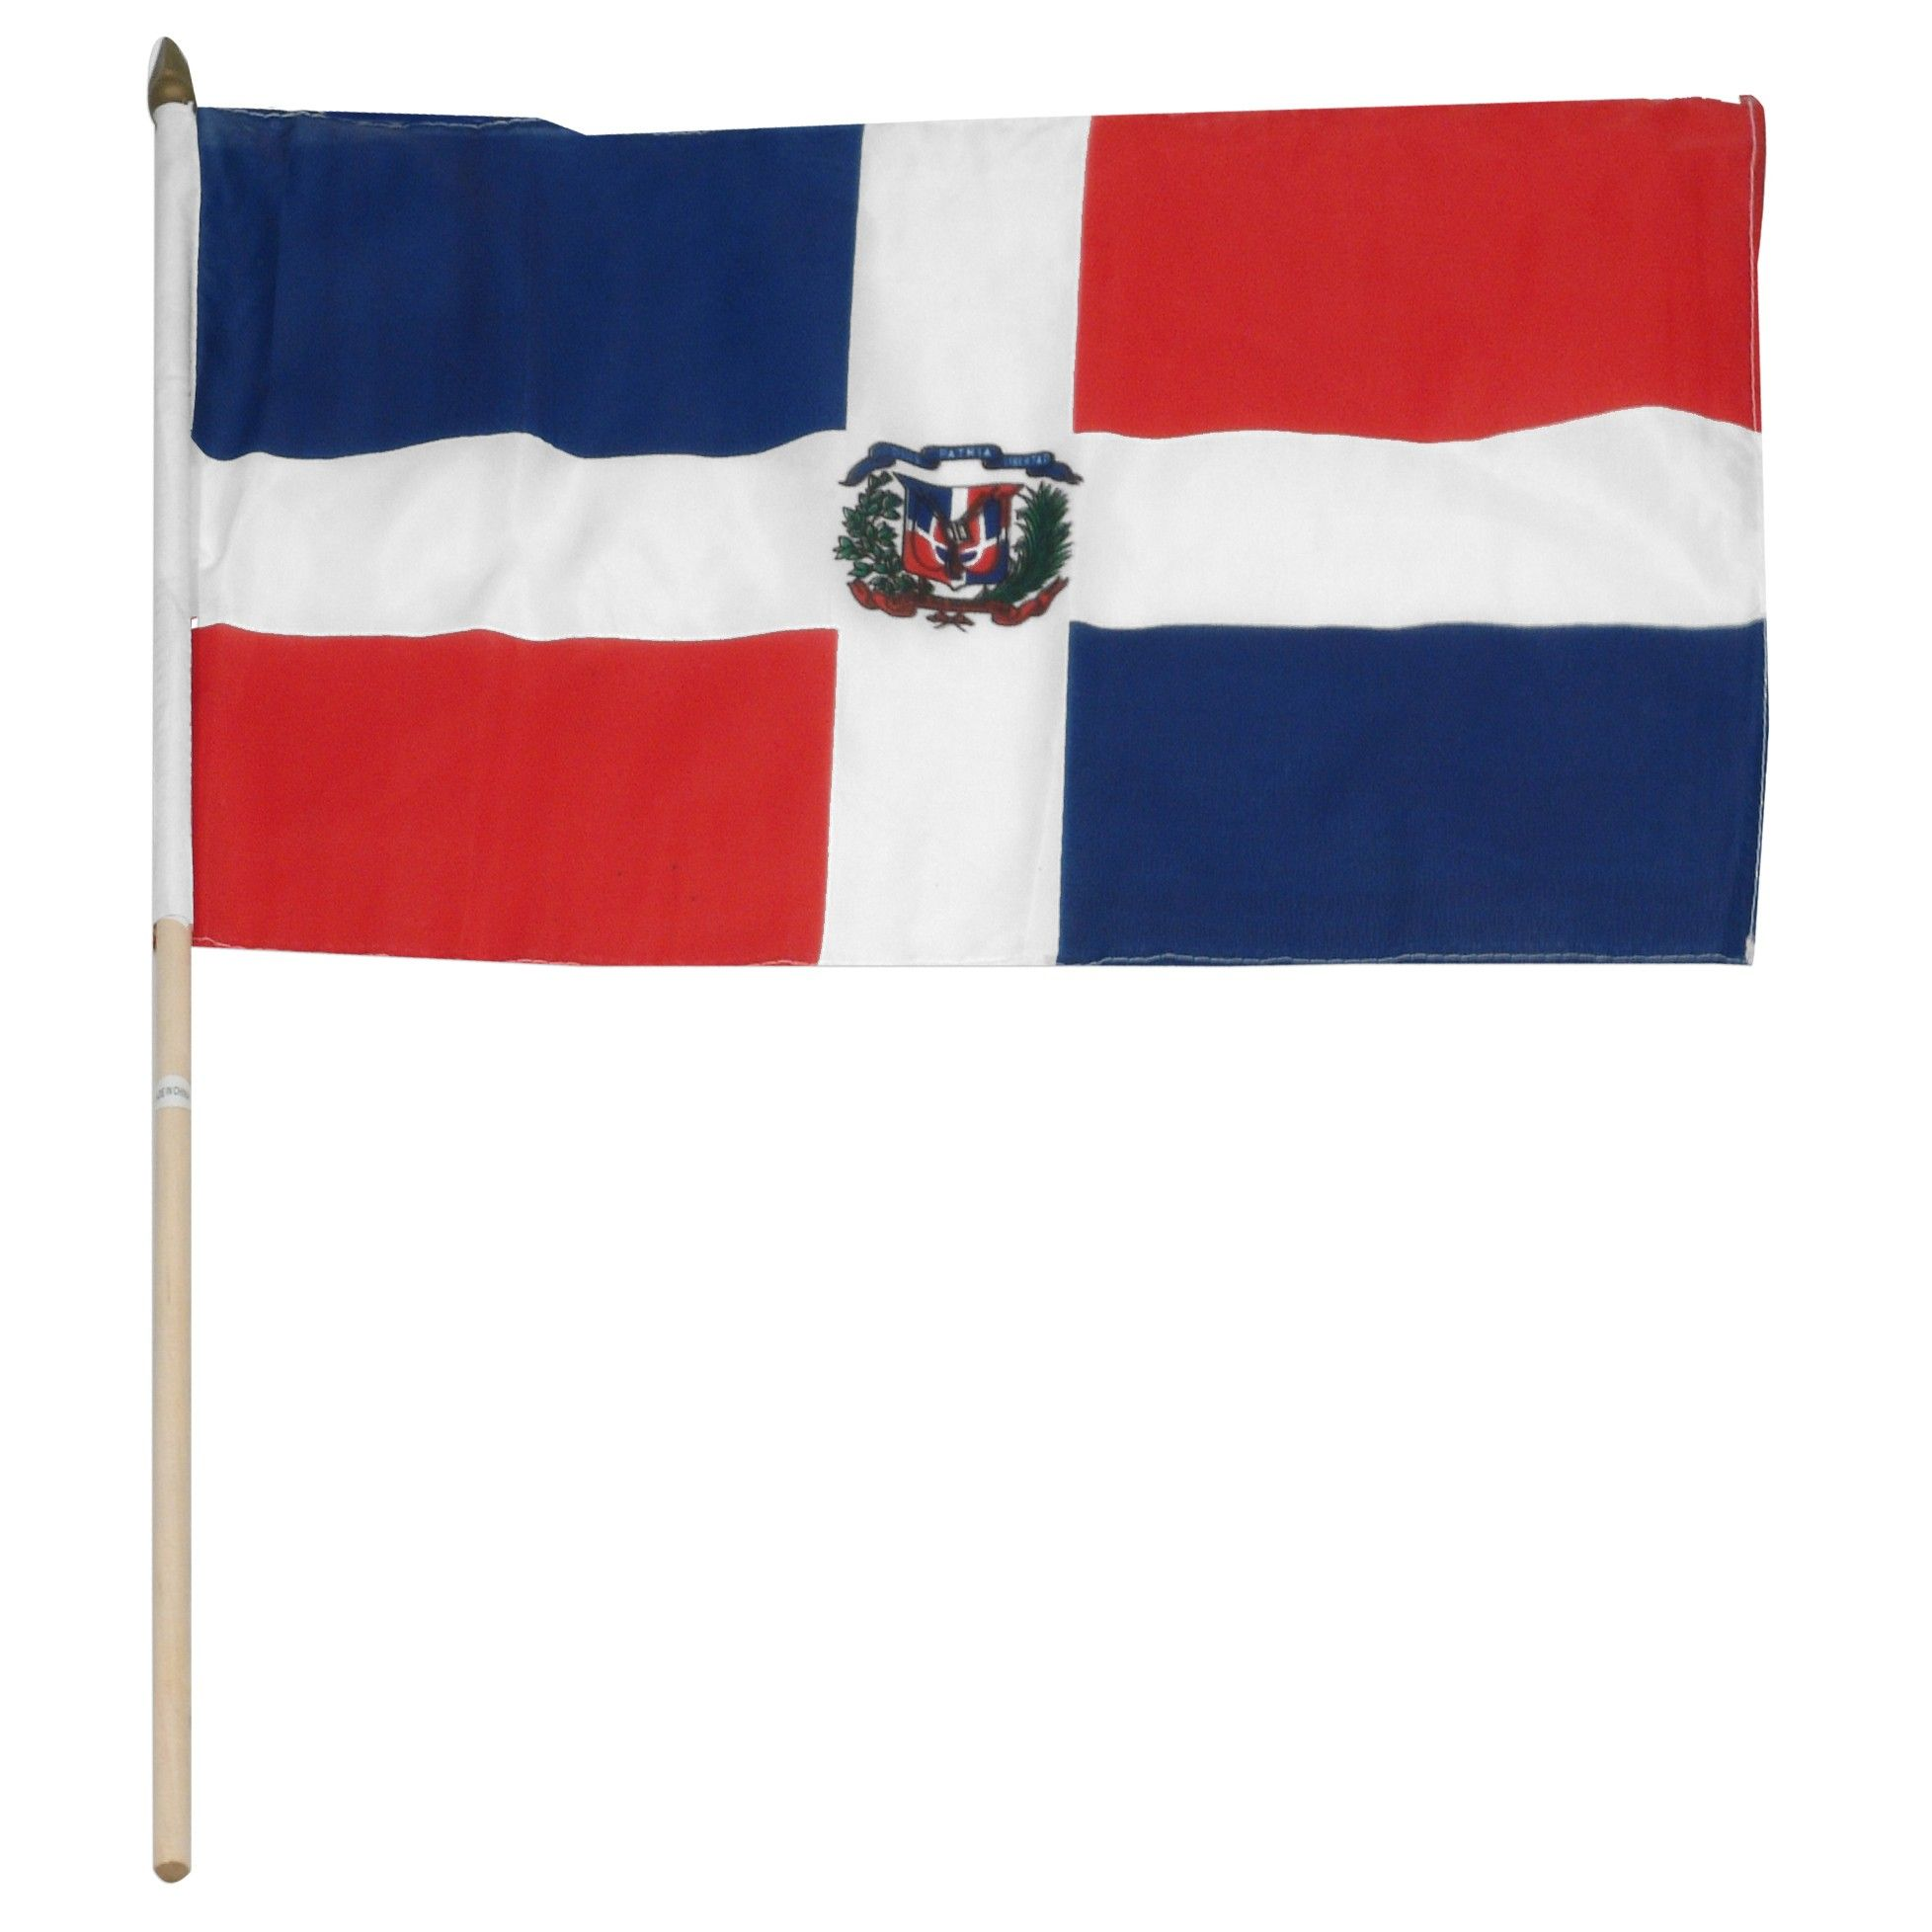 1956x1956 High Res Dominican Flag Wallpapers #456757 Justin Petrie 05.19.15